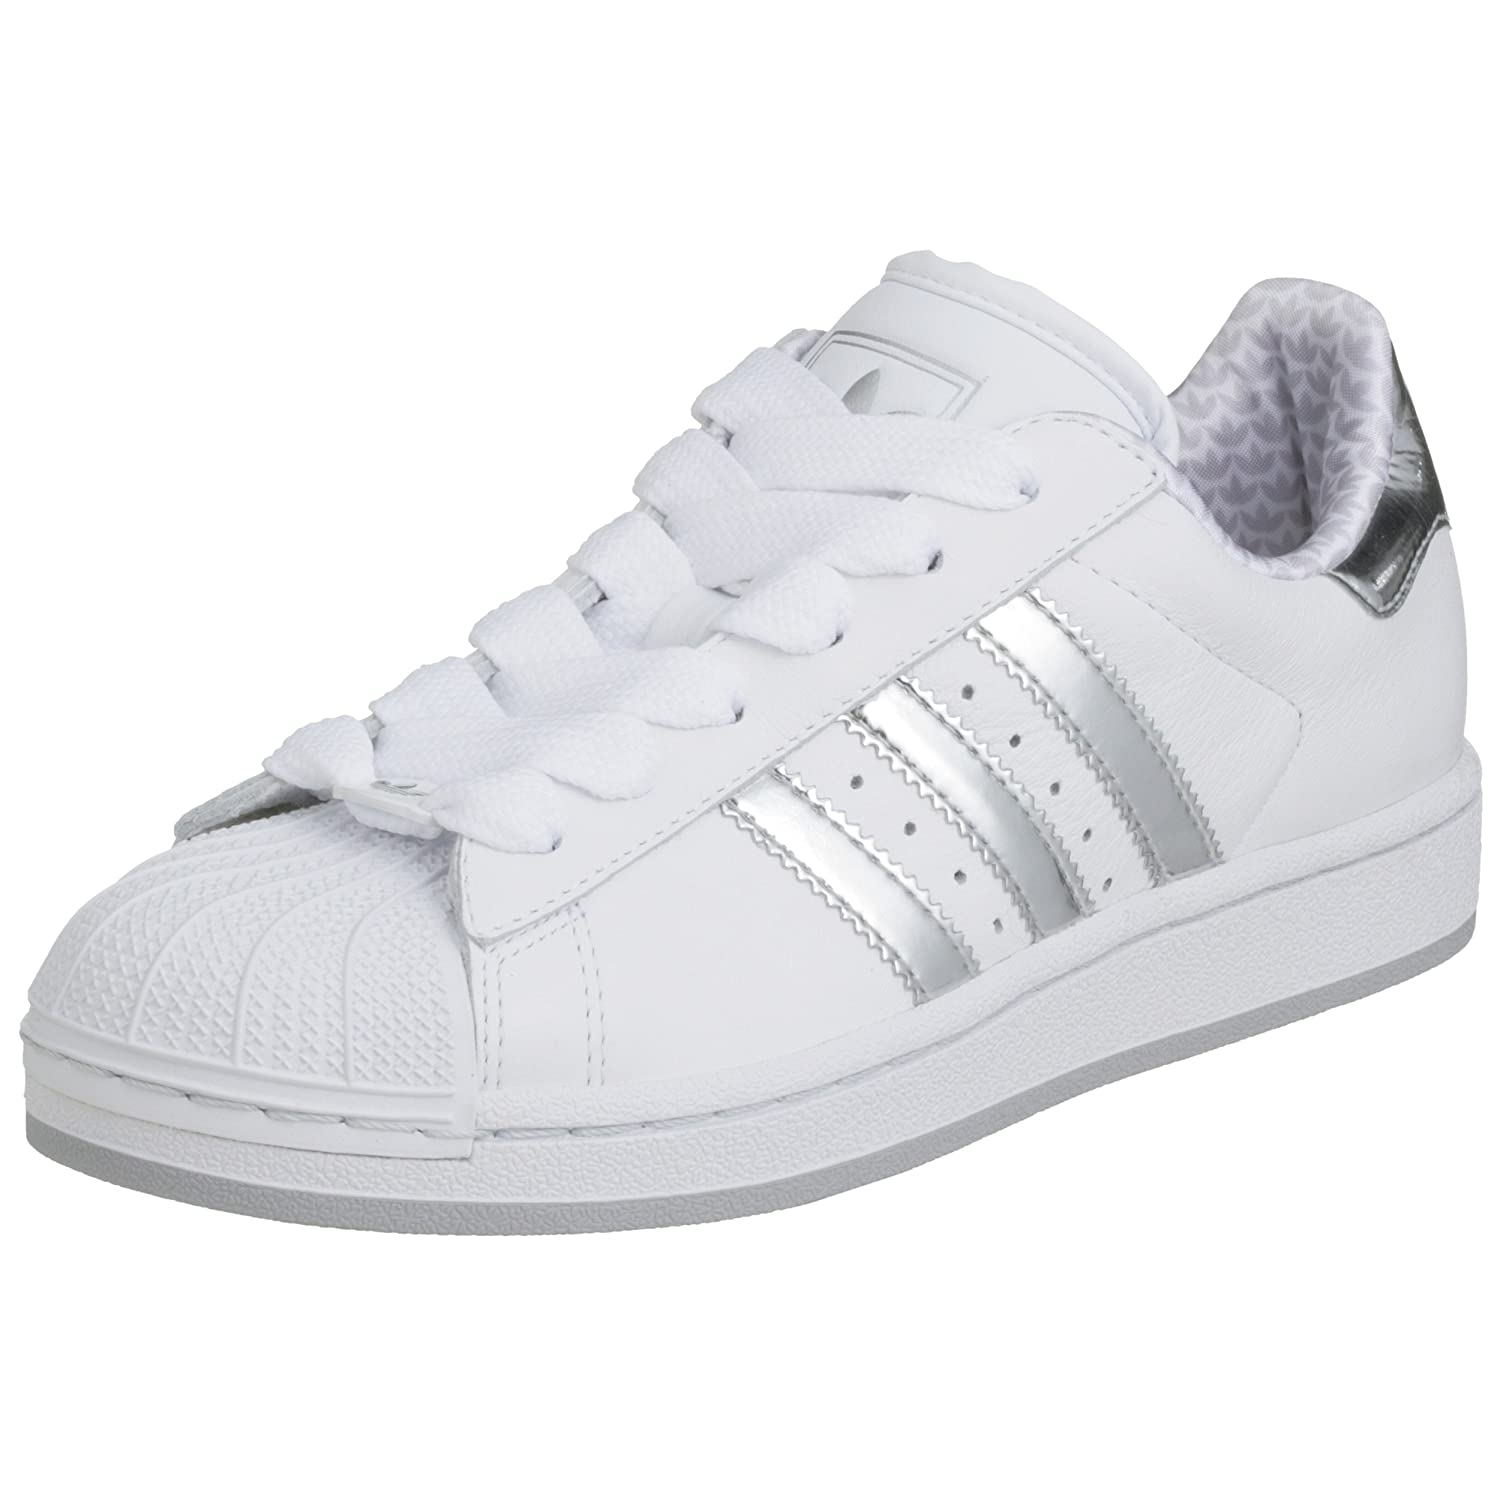 Adidas Originals Superstar 2 White/Silver